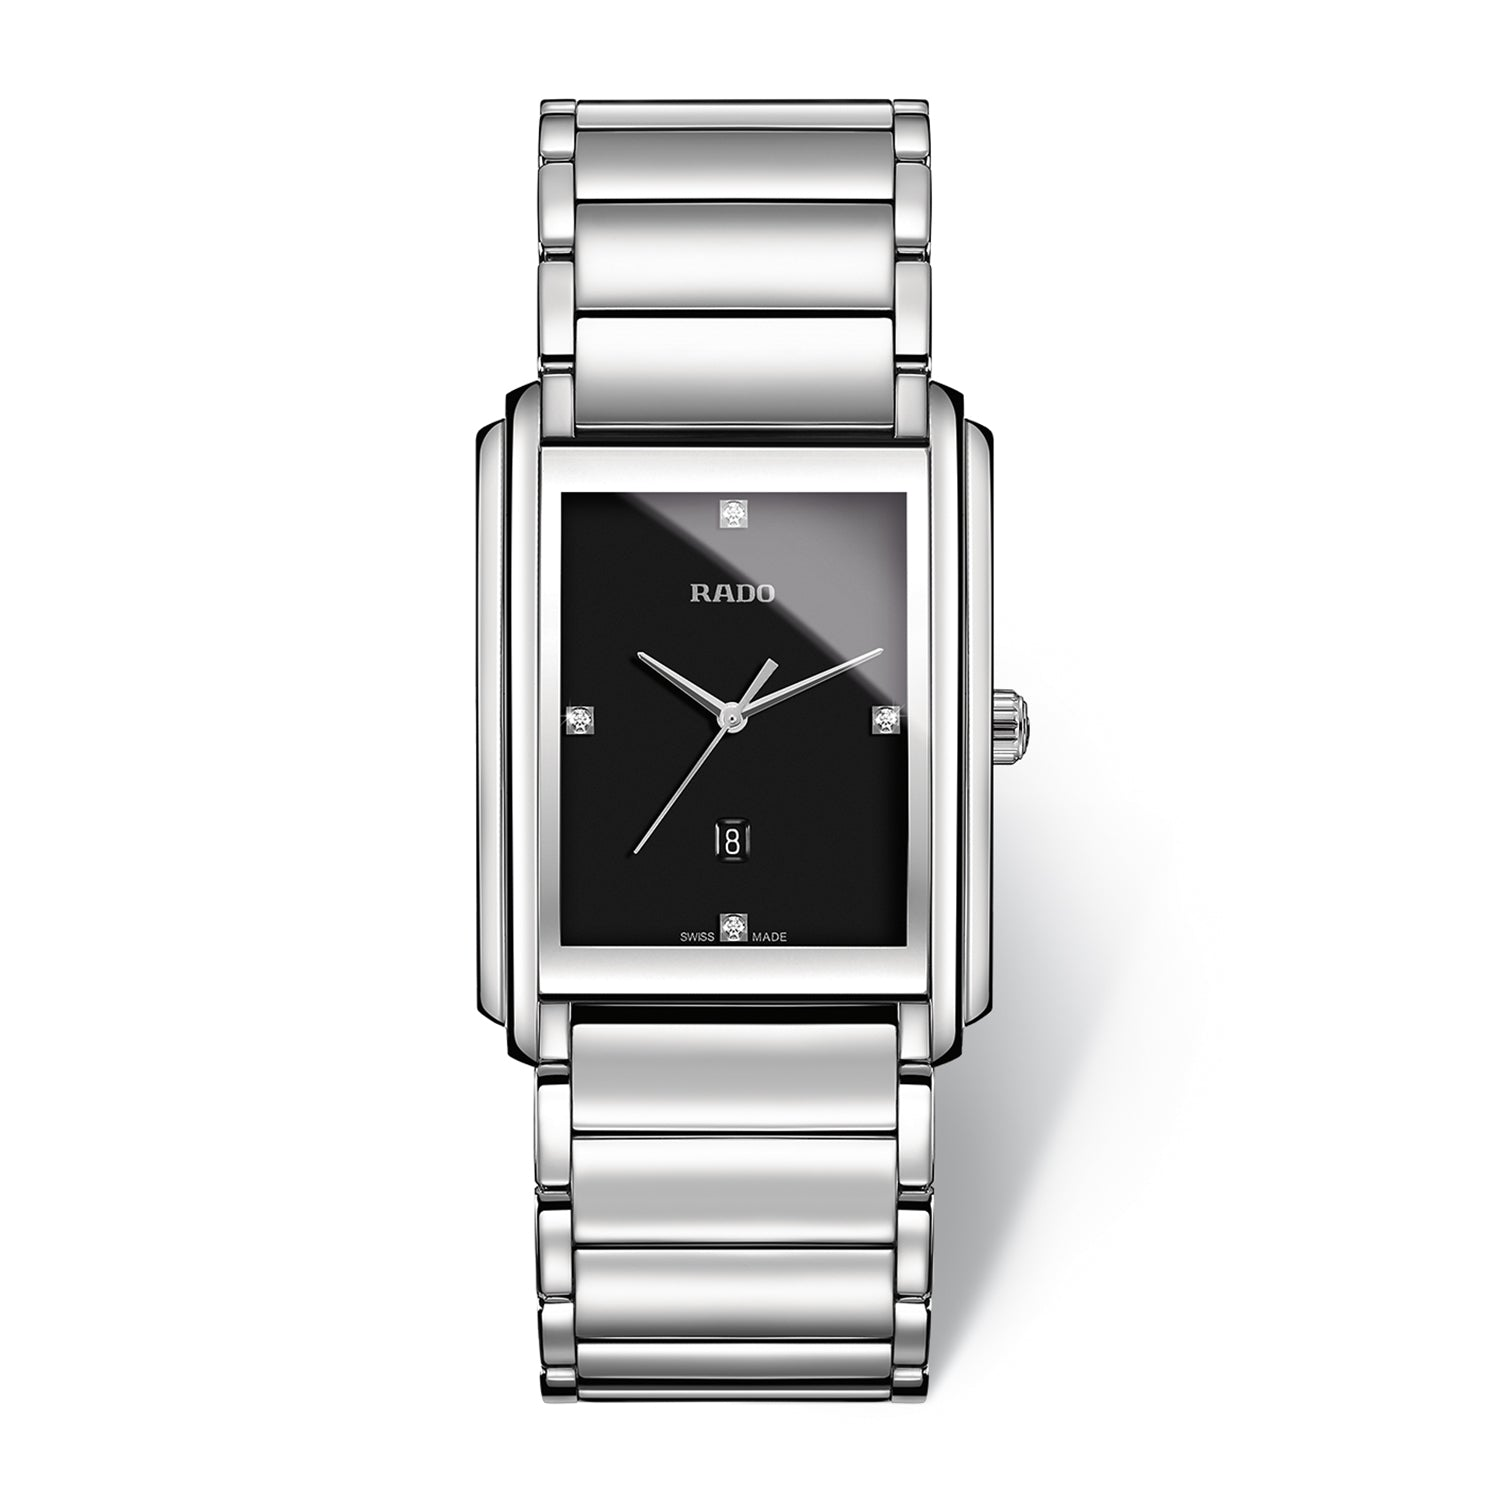 Rado Integral L watch, Stainless steel bracelet with Black dial